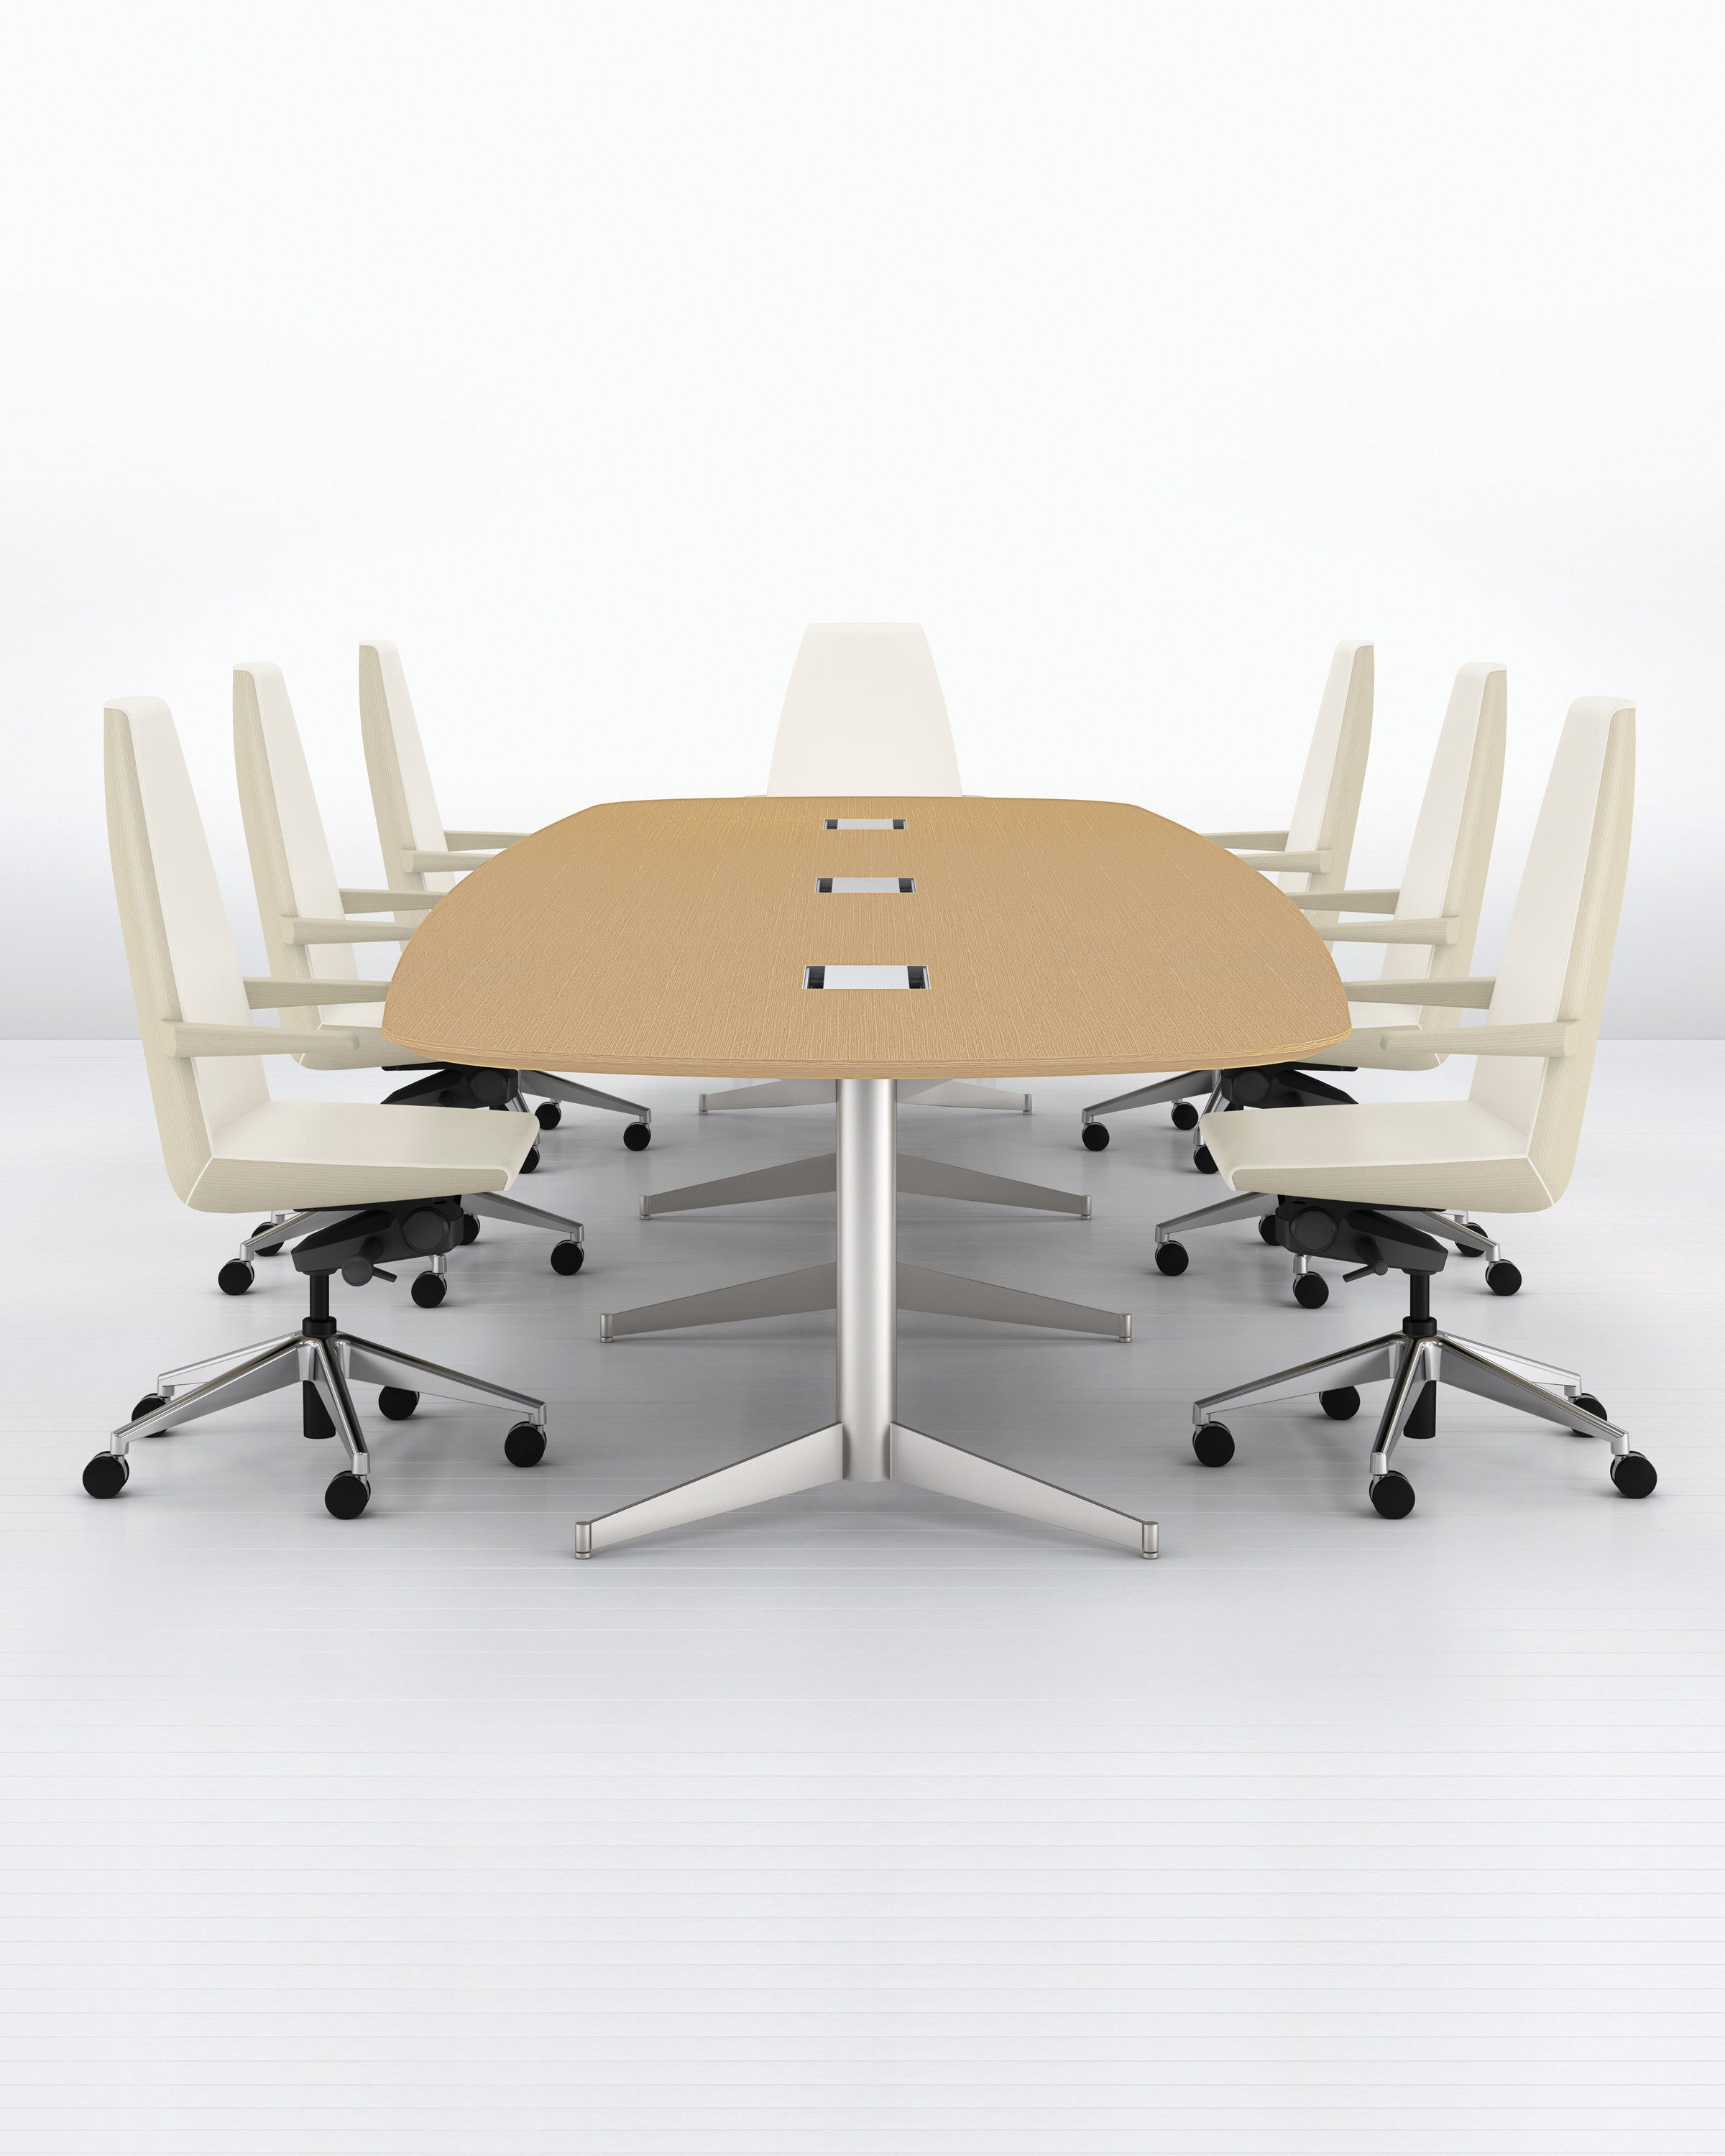 MP Oblong Conference Table In Wood Fuentes Interminables De - Oblong conference table